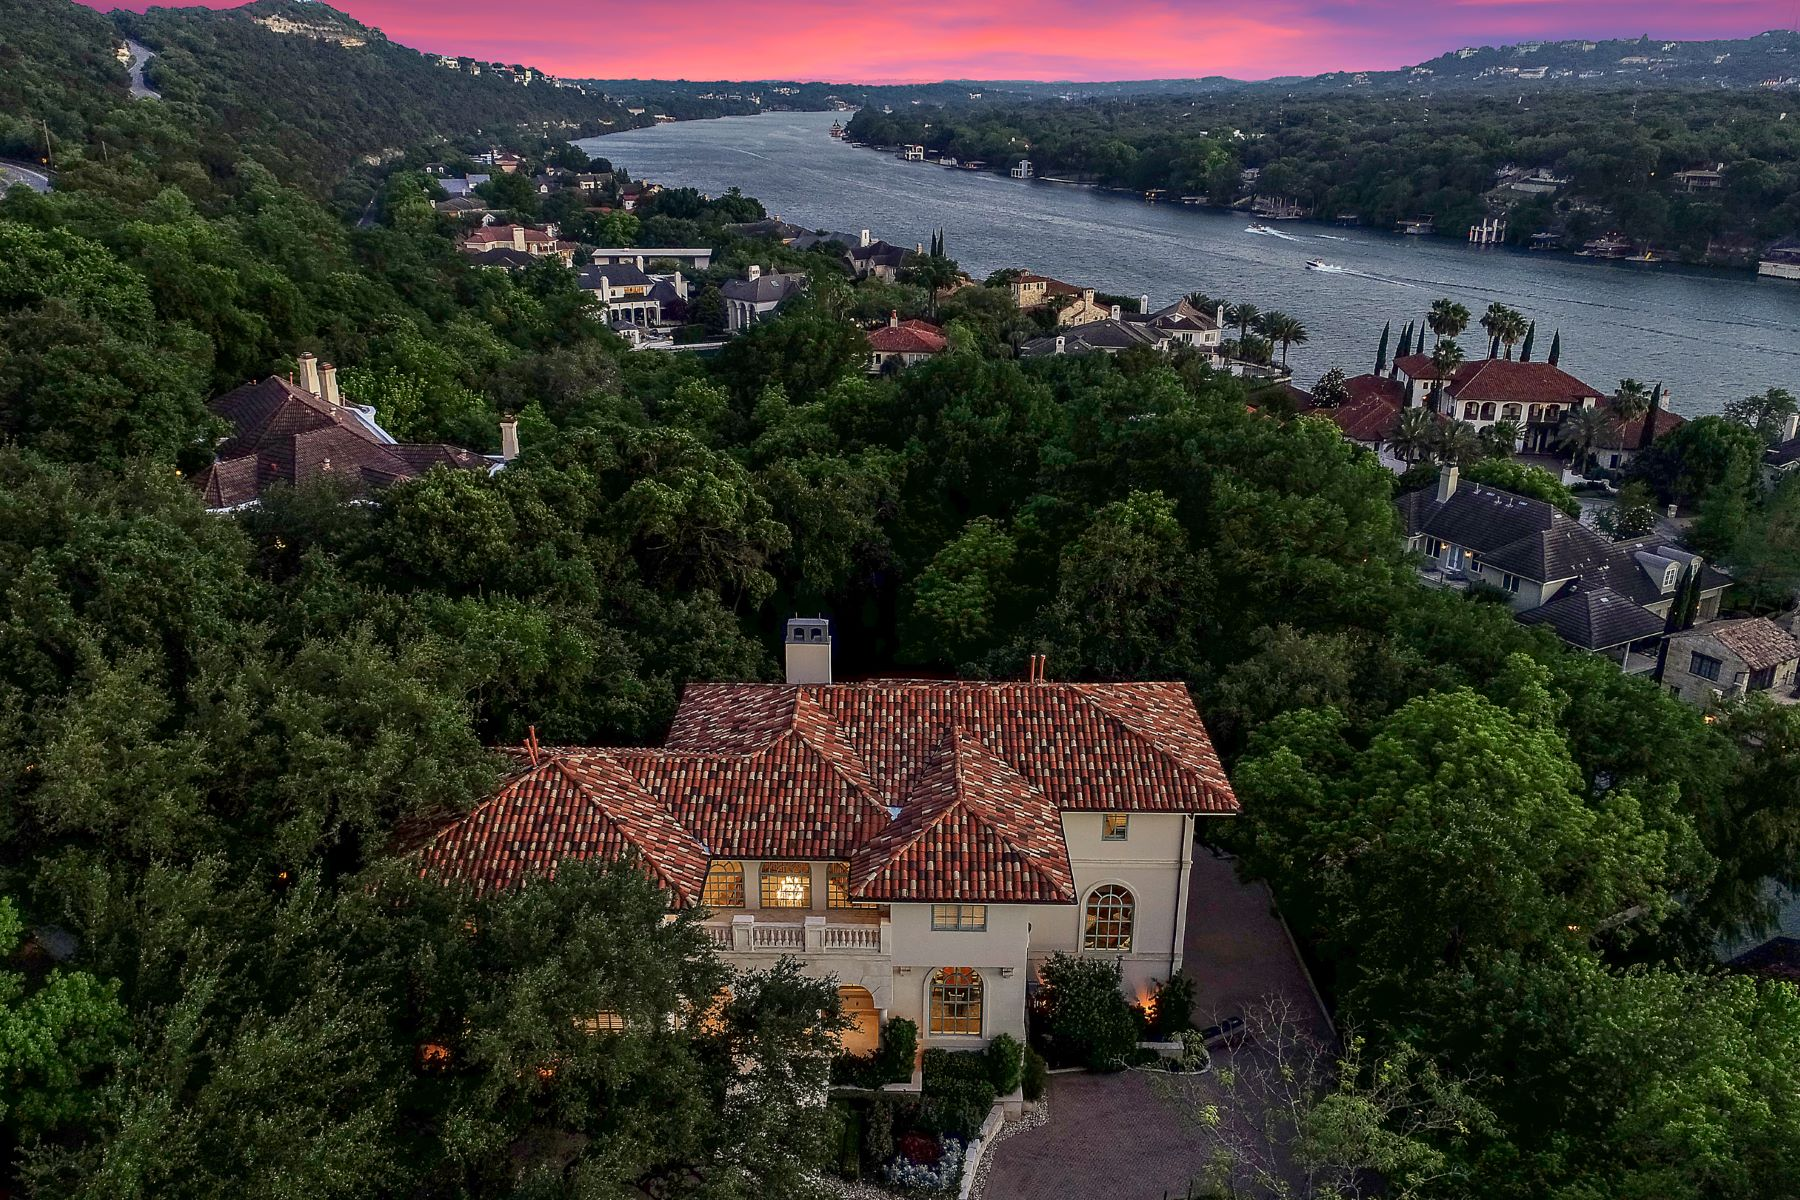 Single Family Homes for Sale at The Marque at Island Cove on Lake Austin 4303 Island Avenue Austin, Texas 78731 United States